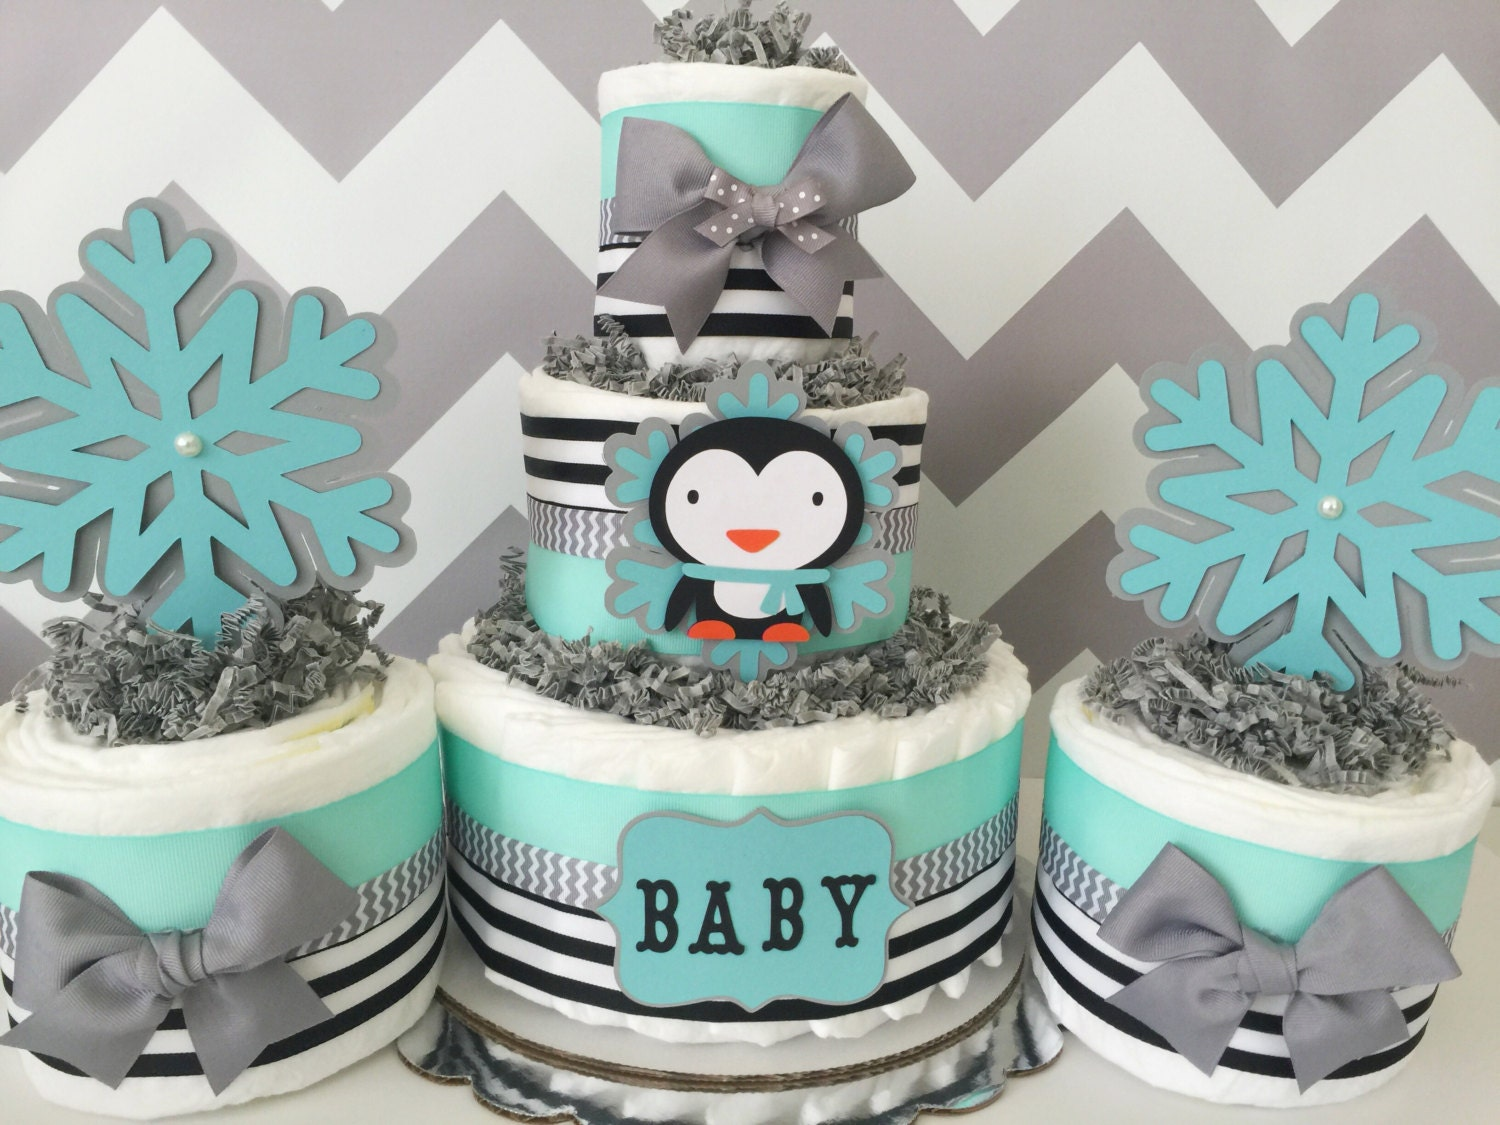 Penguin Winter Diaper Cake In Mint, Gray And Black, Penguin Baby Shower  Centerpieces